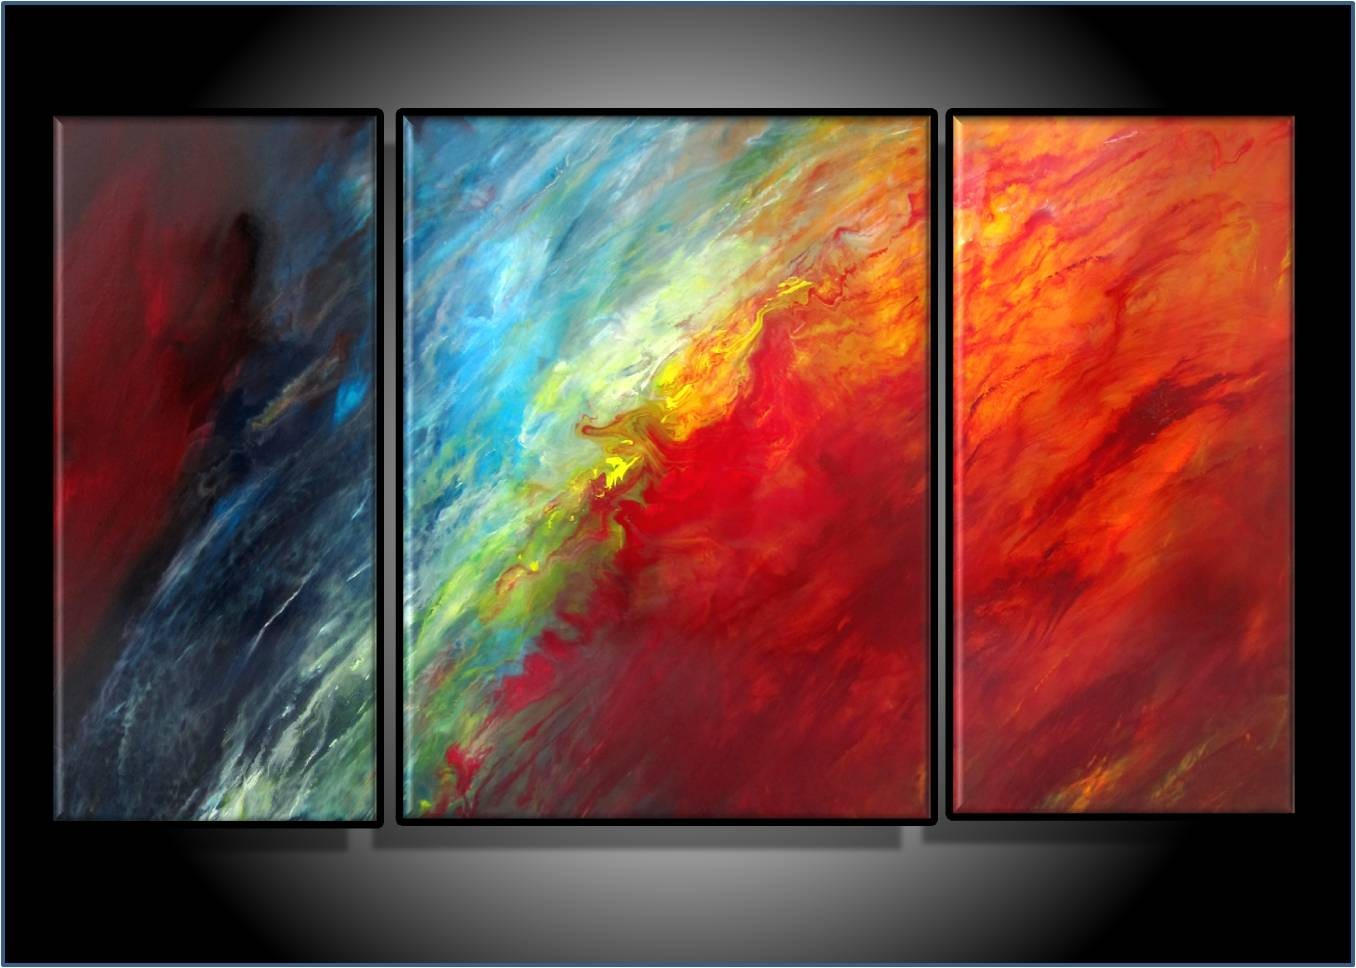 abstract-art-paintings-images-1